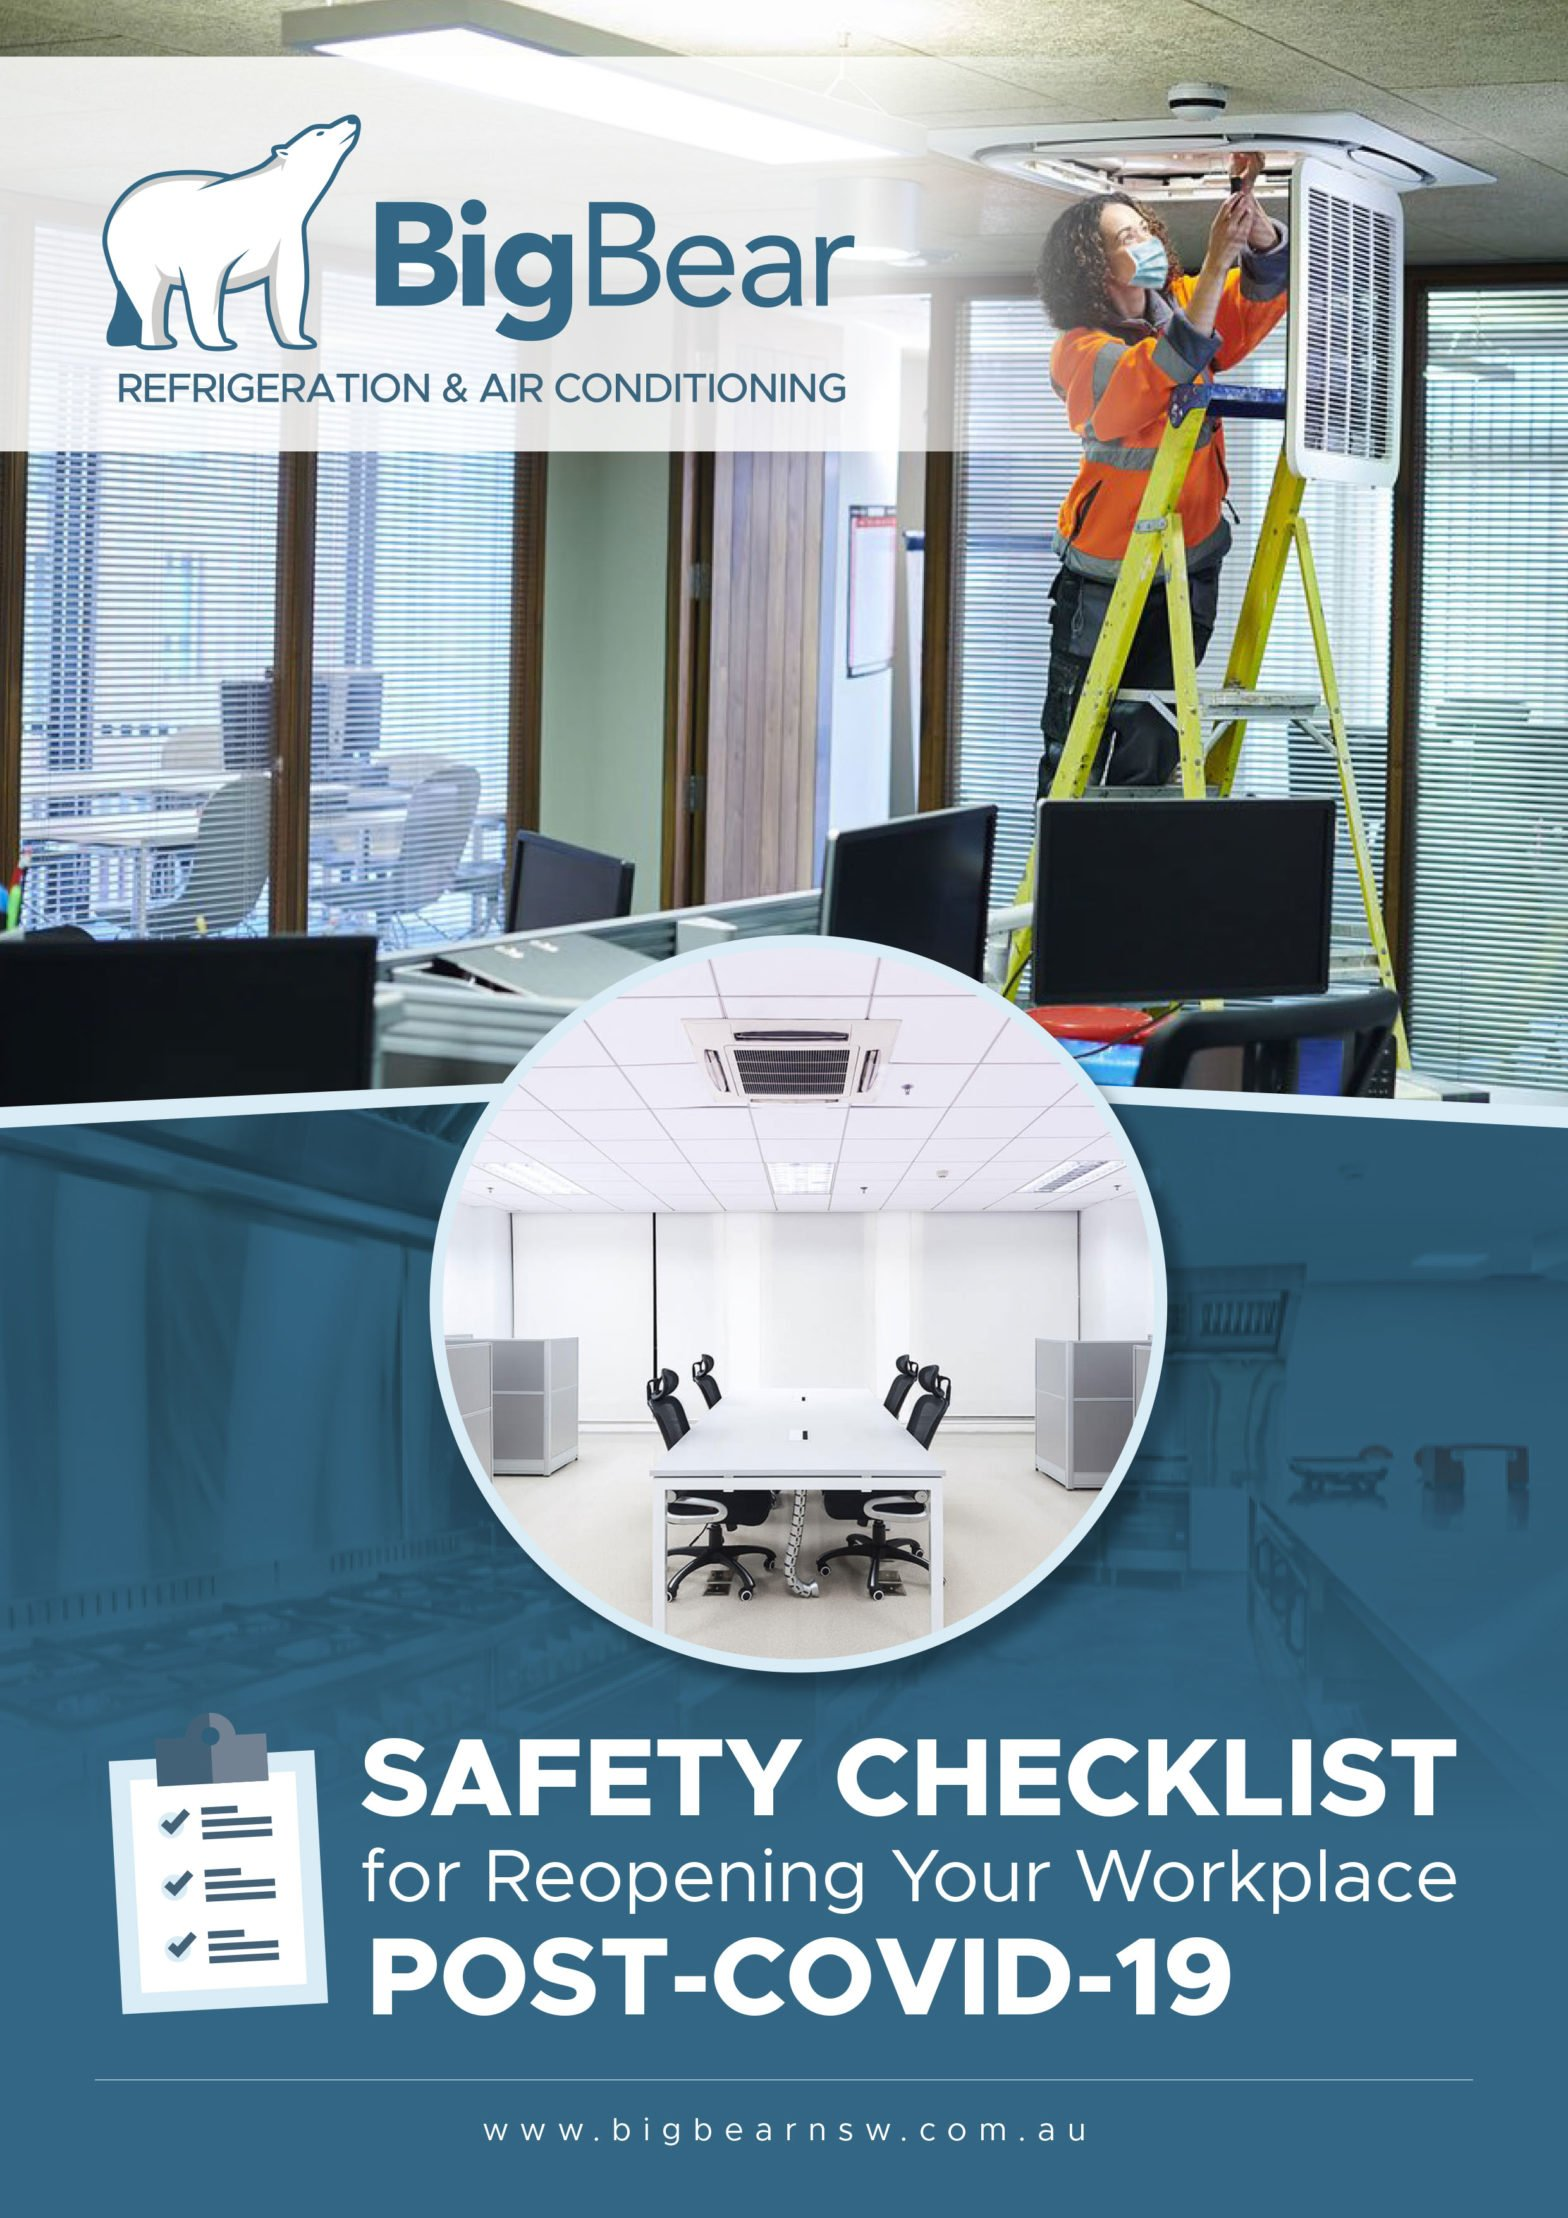 Safety checklist for reopening your workplace